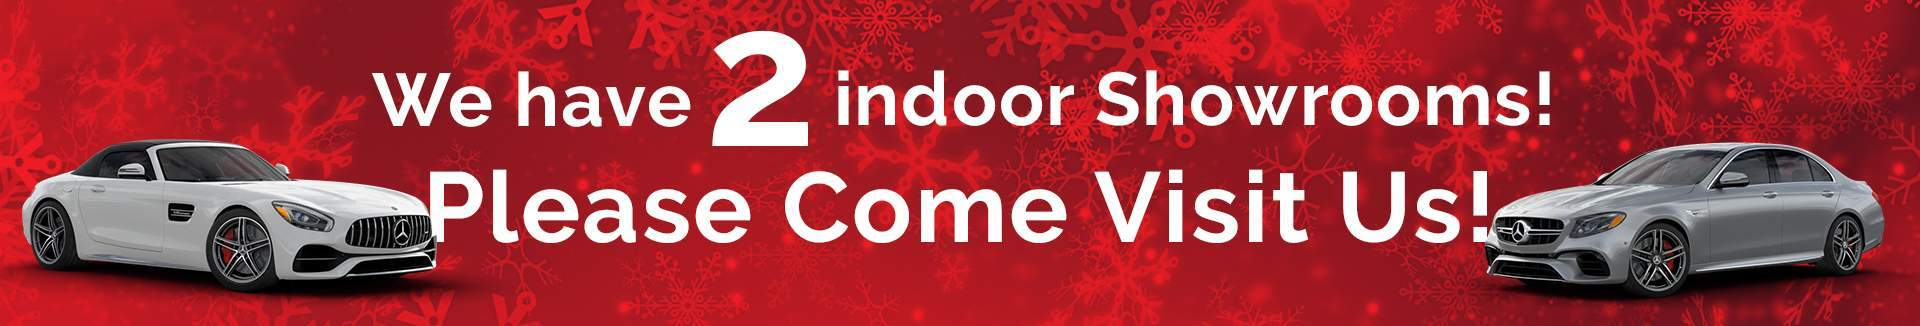 indoor showrooms